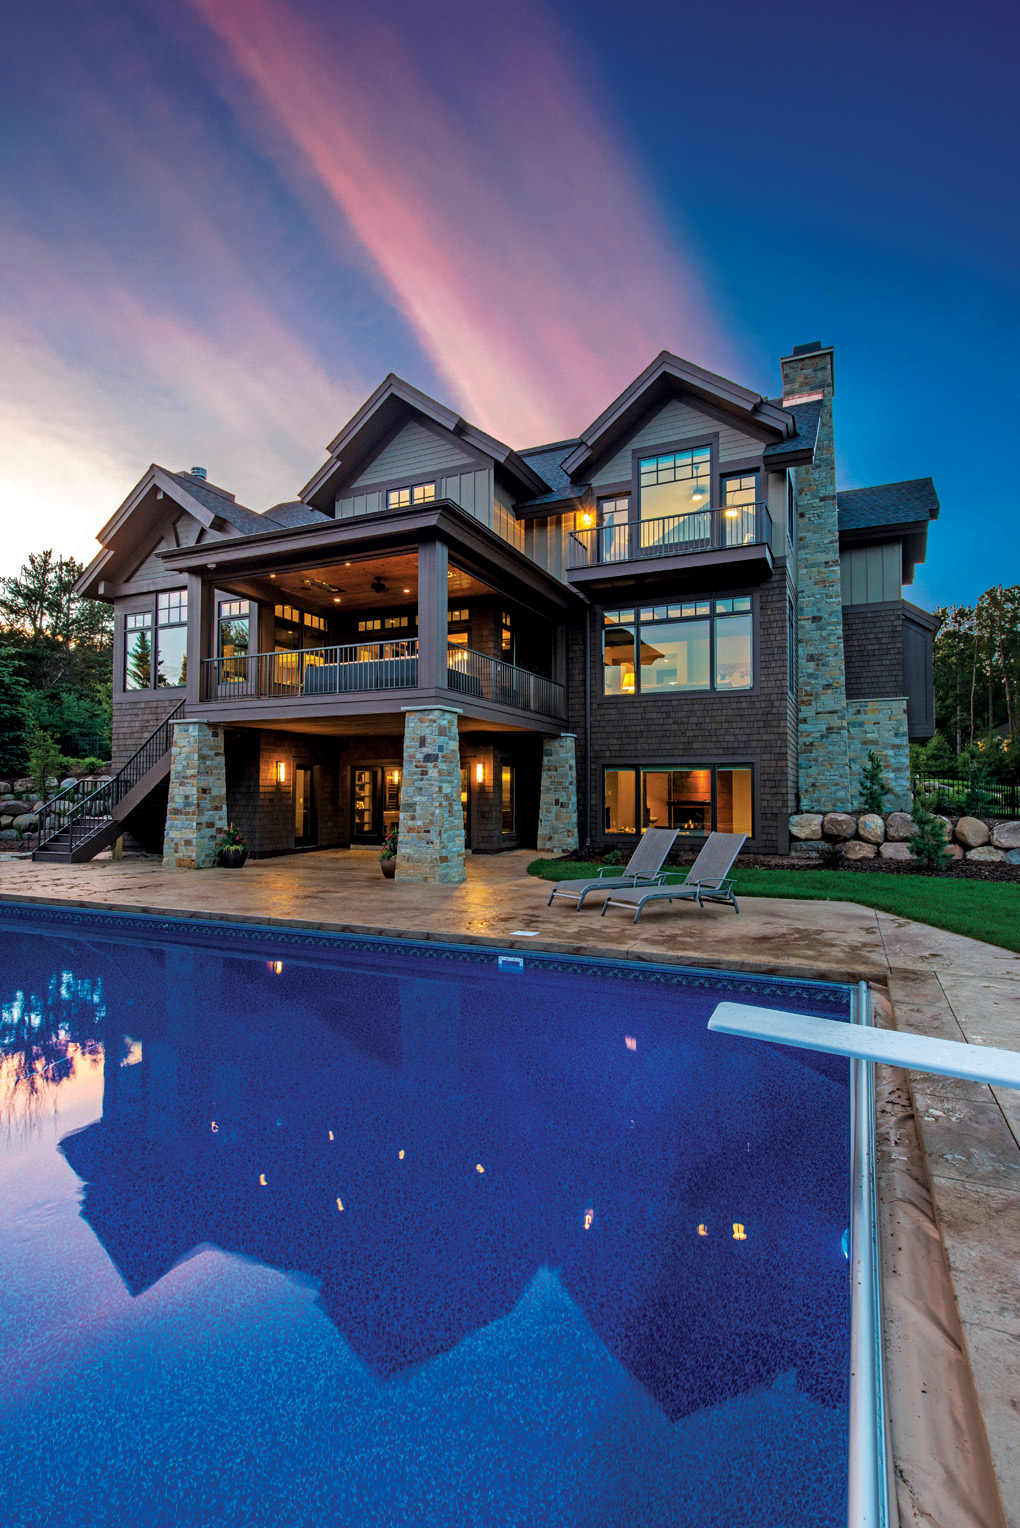 Elegant Mountain Contemporary Home In Colorado Radiates With Warmth: Modern Mountain Lodge By Denali Custom Homes